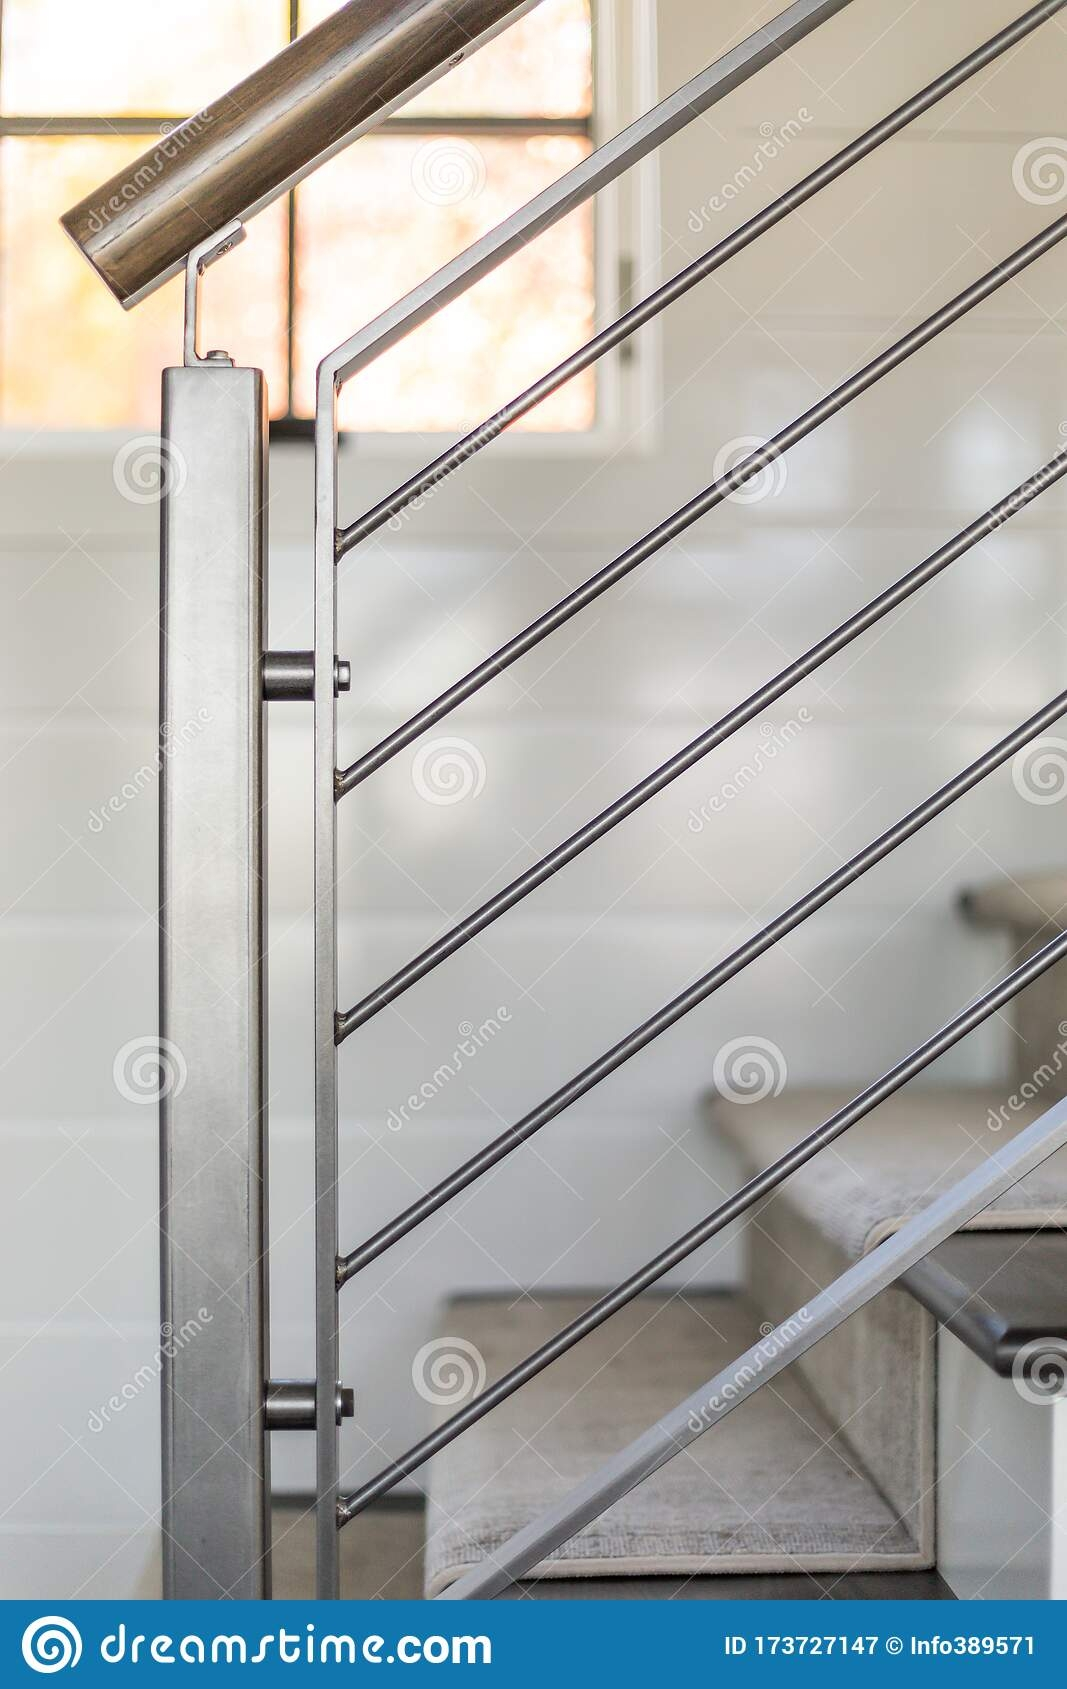 Custom Metal Railing In Modern Farmhouse Stock Image Image Of | Modern Farmhouse Stair Railing | Contemporary | Design Small House | Simple 2Nd Floor Railing Wood Stairs Iron Railing Design | Vintage Farmhouse | Wire